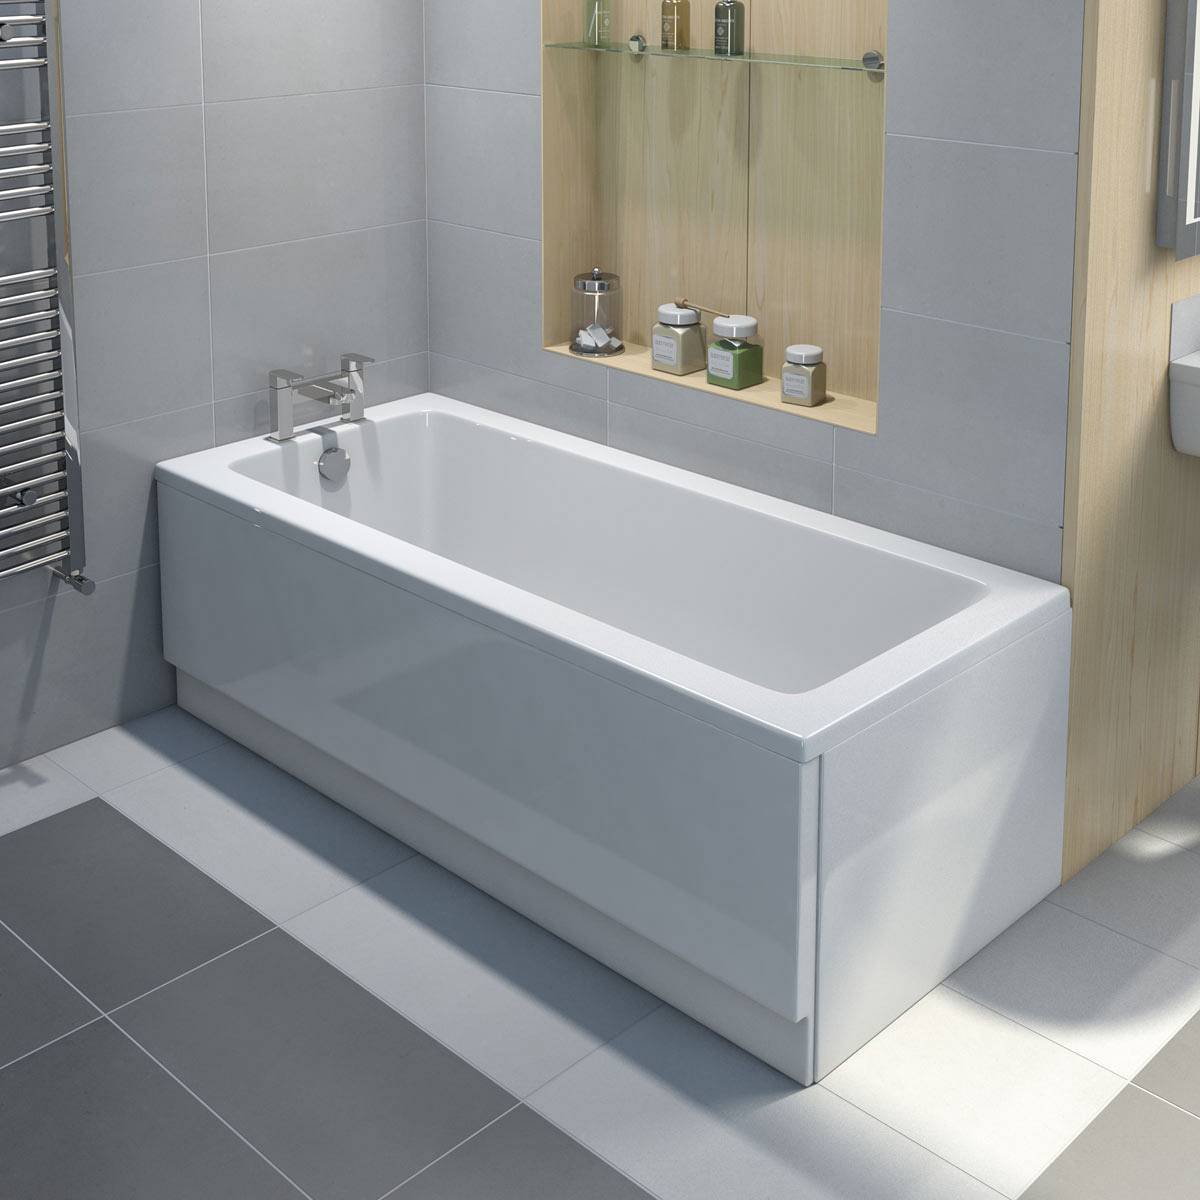 Guide to Fitting Bathroom Panels